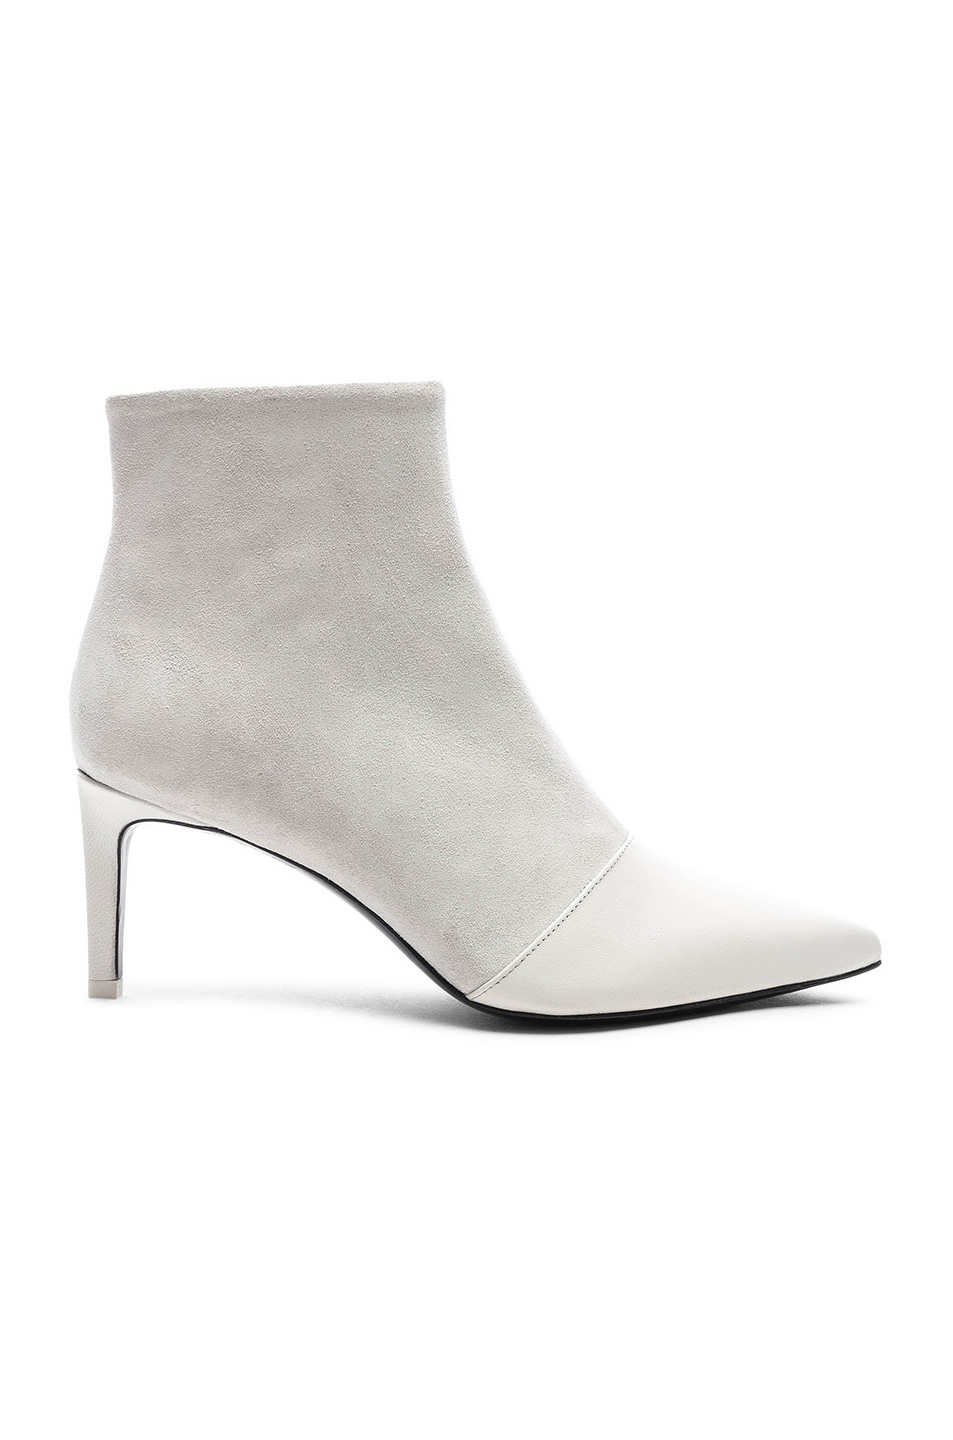 Image 1 of Rag & Bone Leather Beha Boots in White